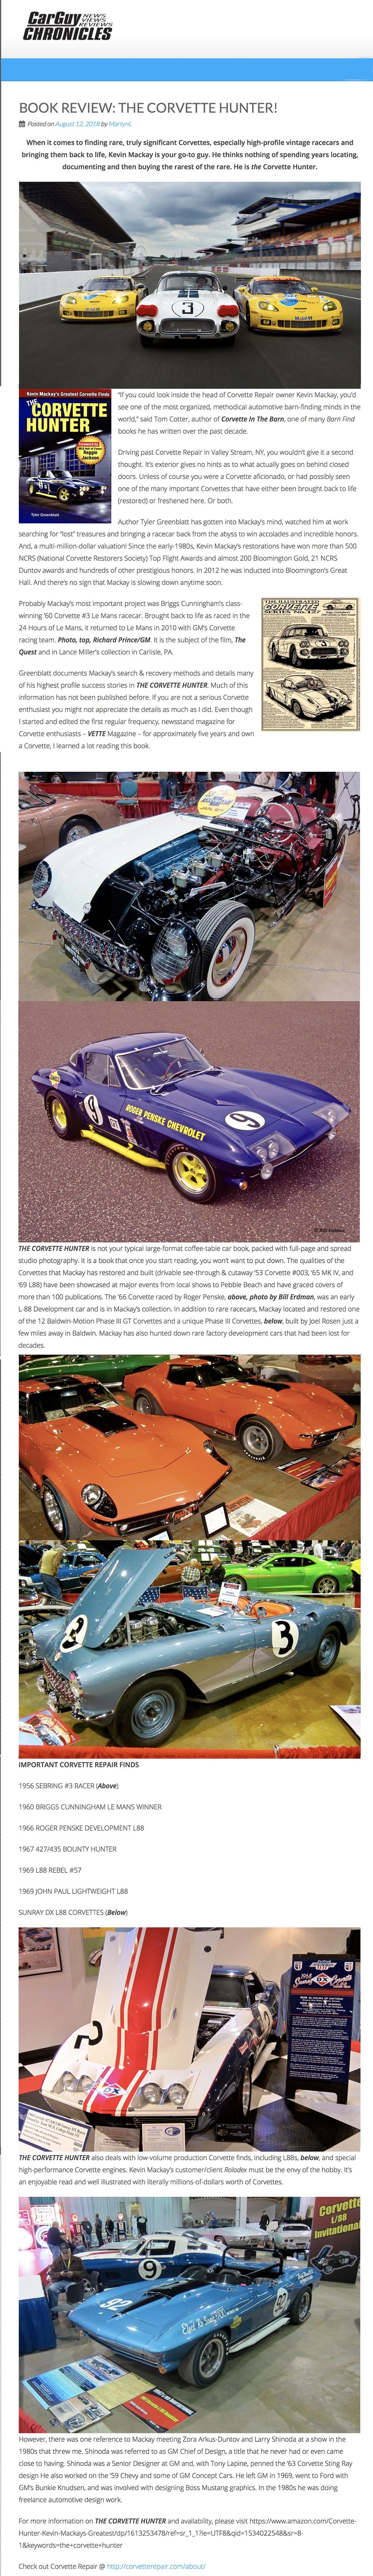 One Owner Car Guy >> Car Guy Chronicles 8 12 18 Book Review The Corvette Hunter